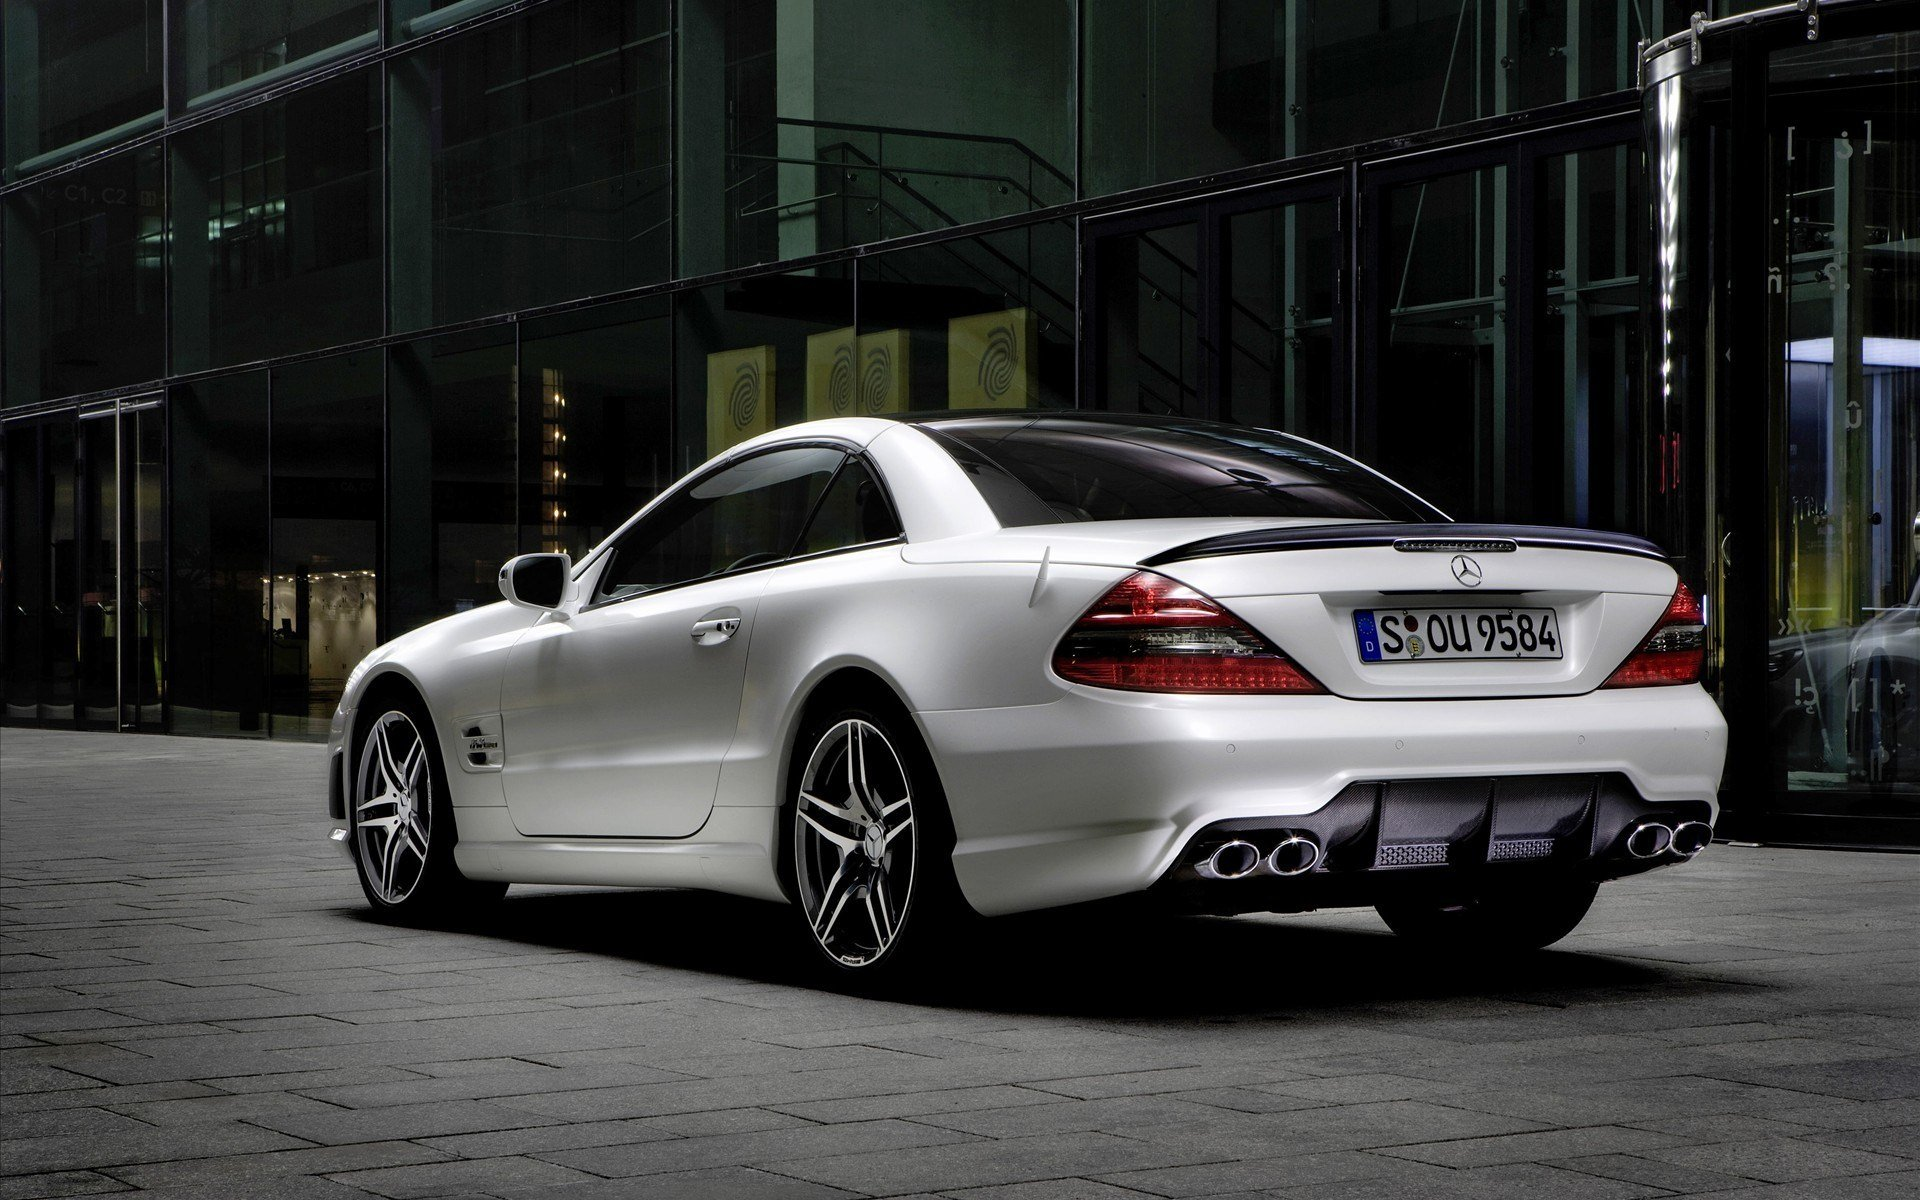 Latest Amg Sl63 Convertible Mercedes Benz Car Photo Hd Wallpapers Free Download